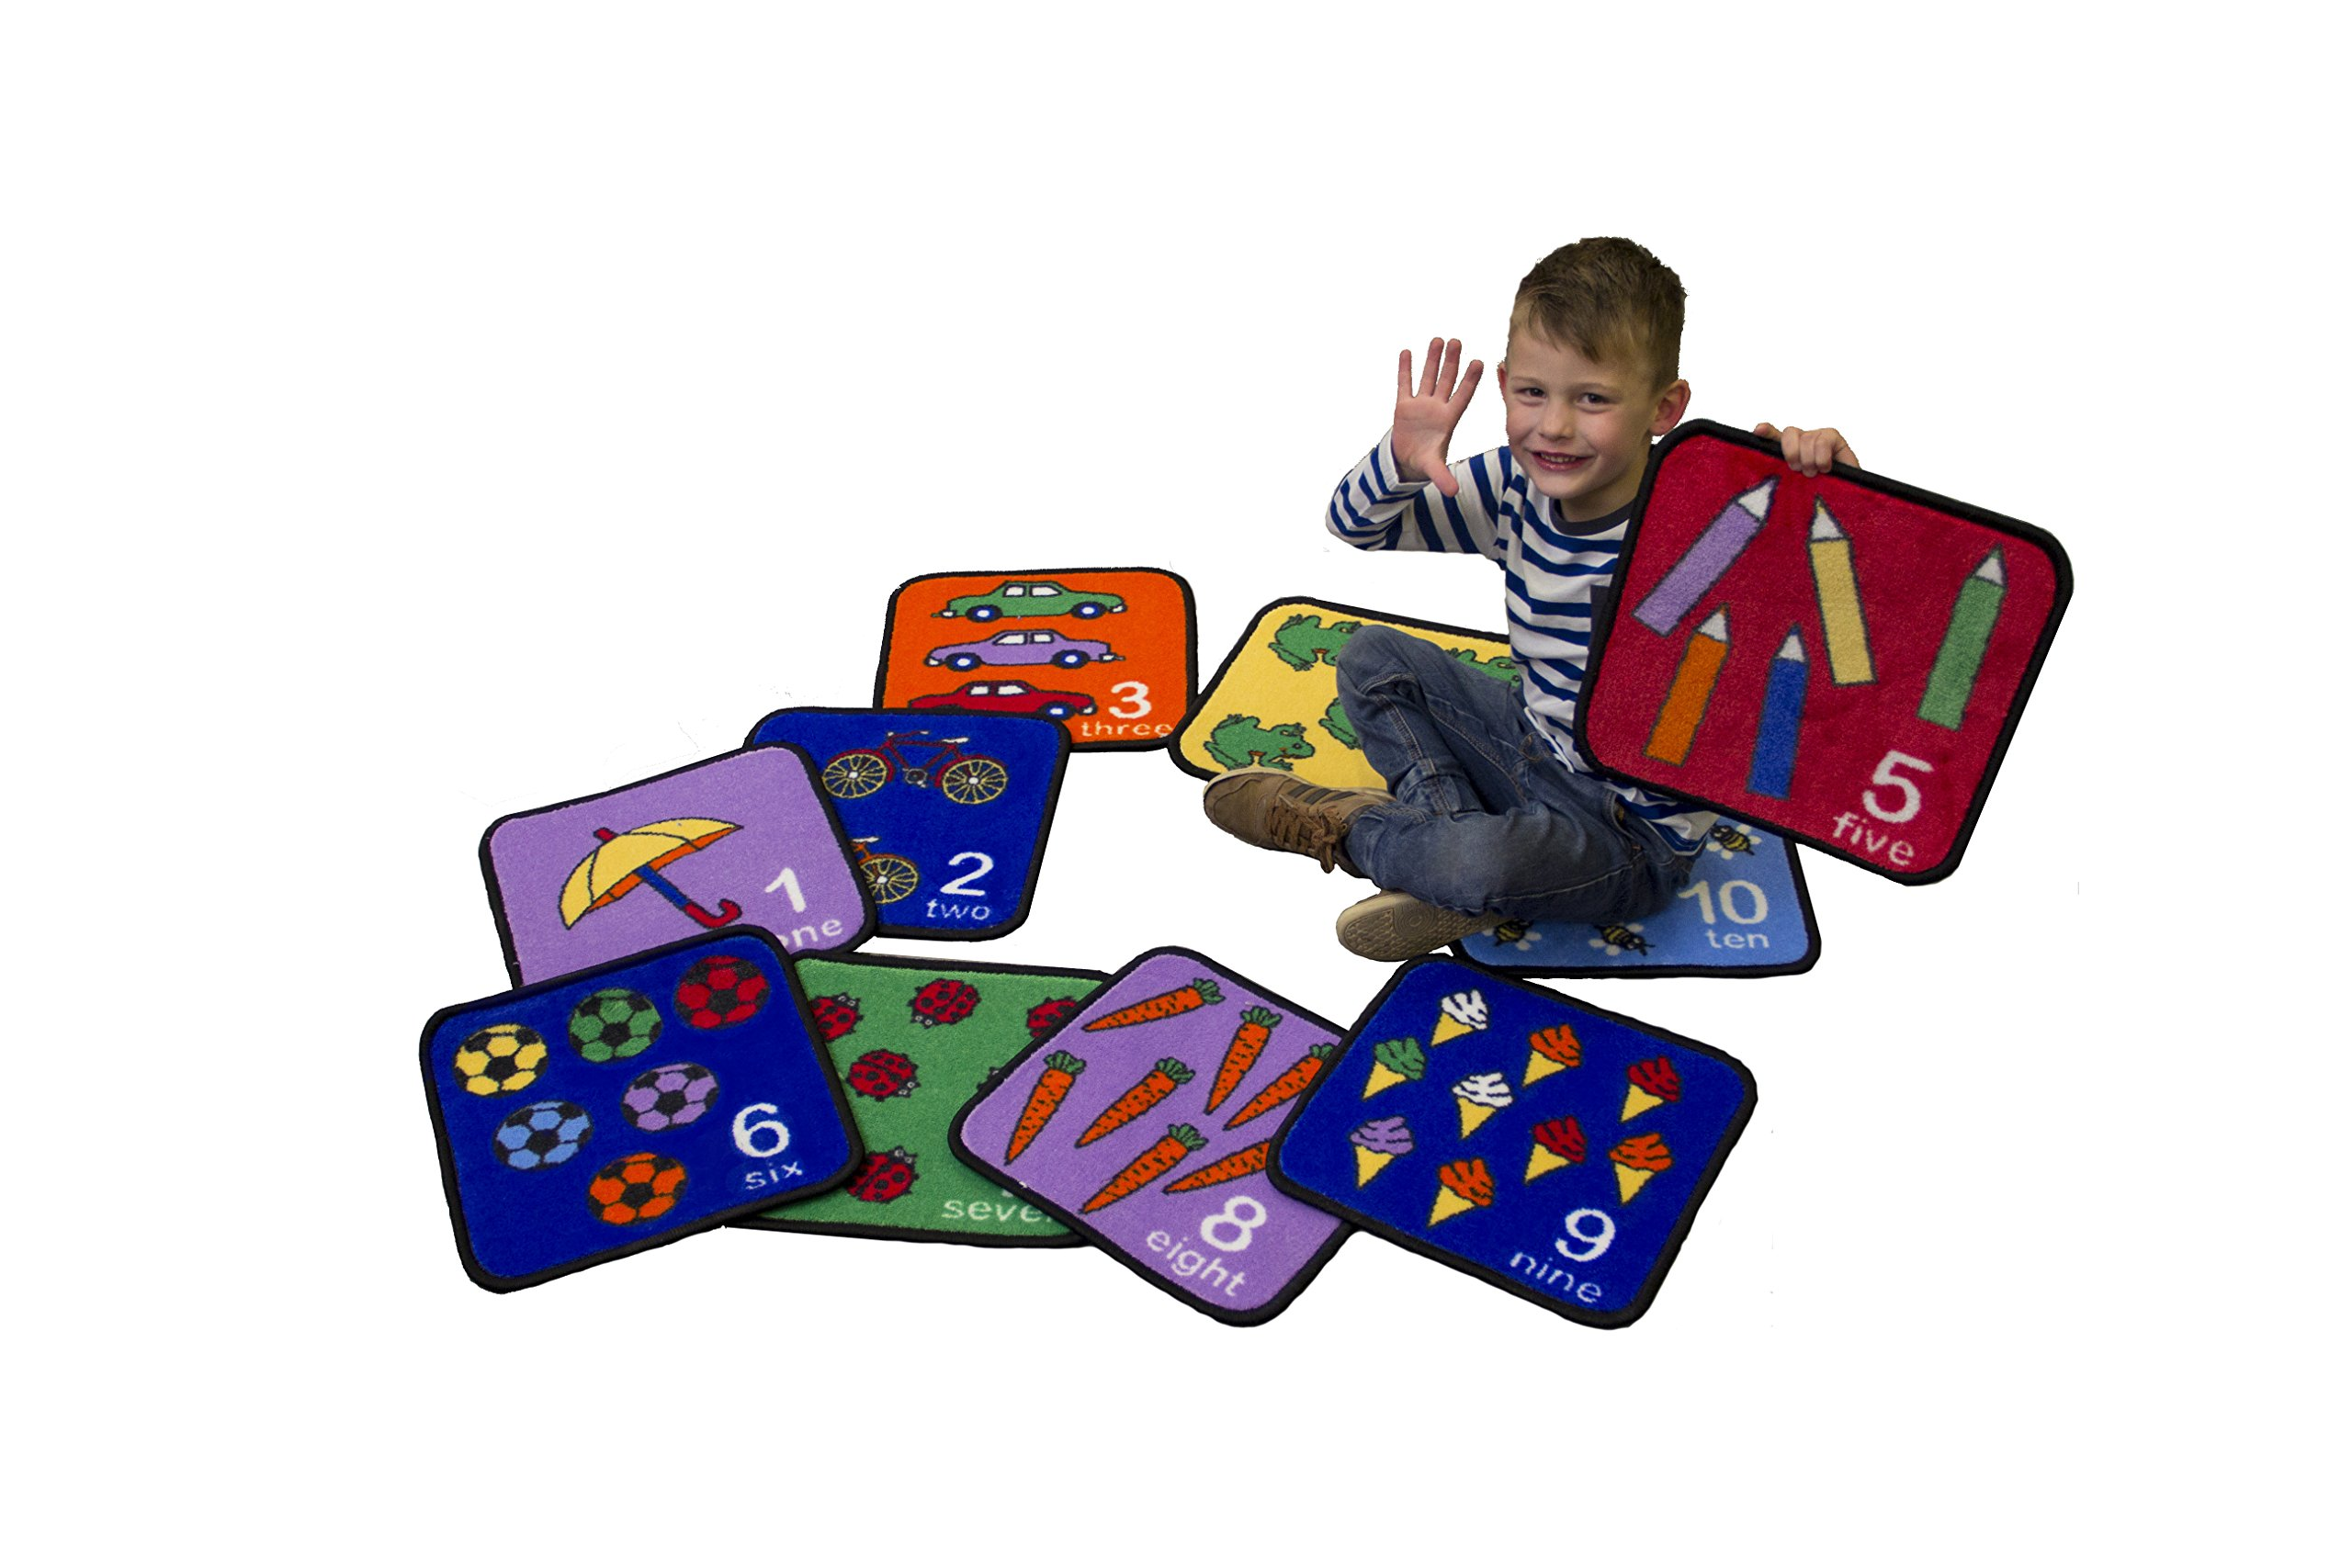 Children's Factory Learning Carpets Seating Squares for Counting Numbers and Images, One Color, one size